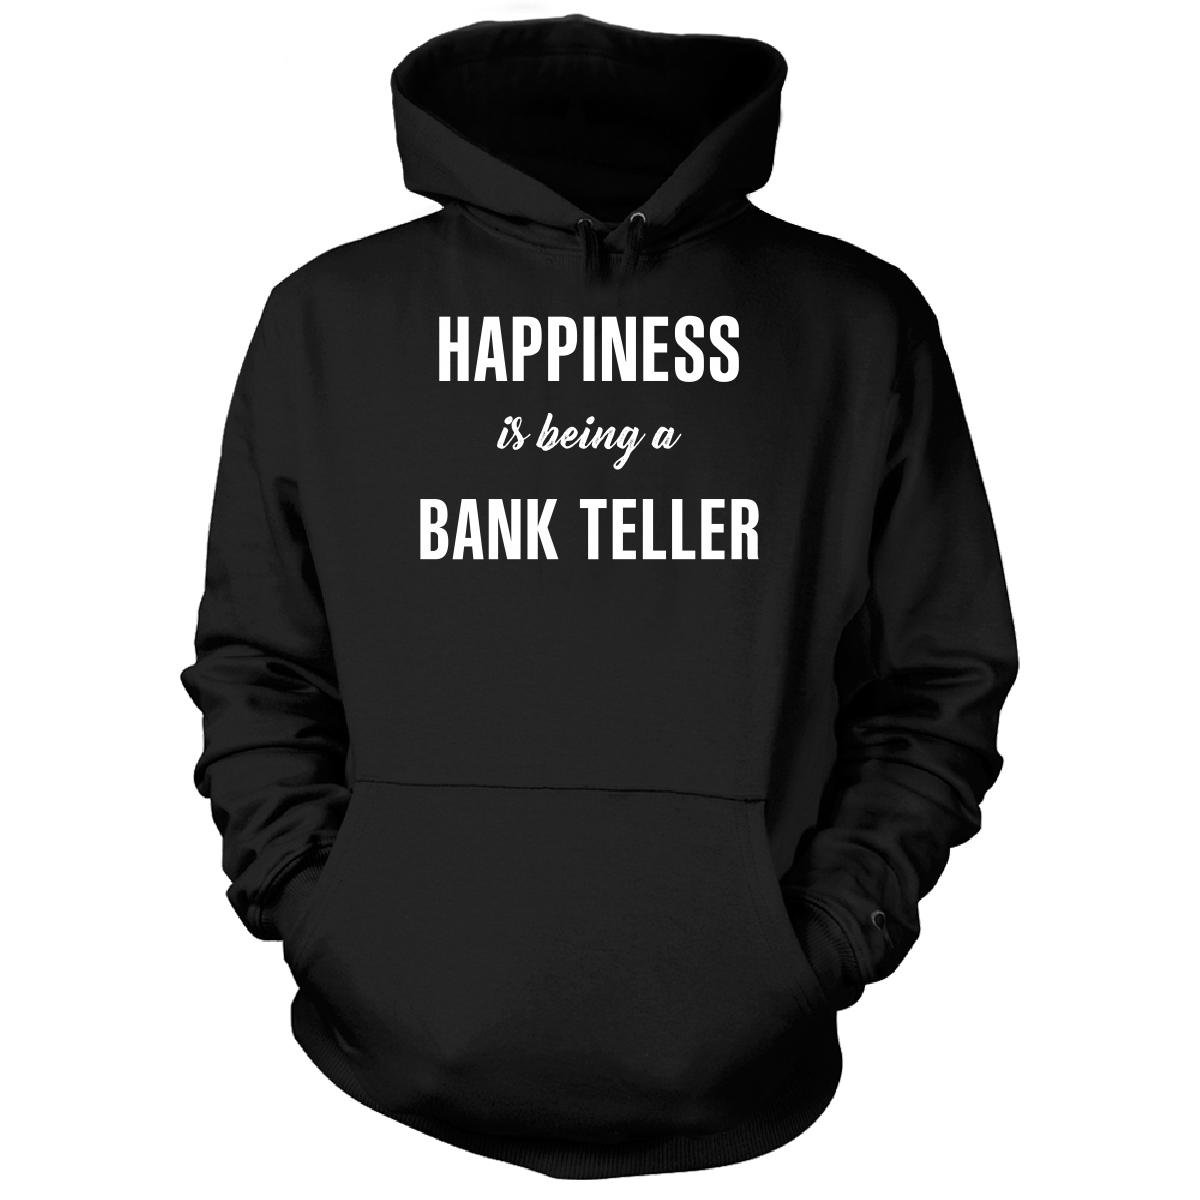 amazoncom happiness is being a bank teller cool gift hoodie clothing